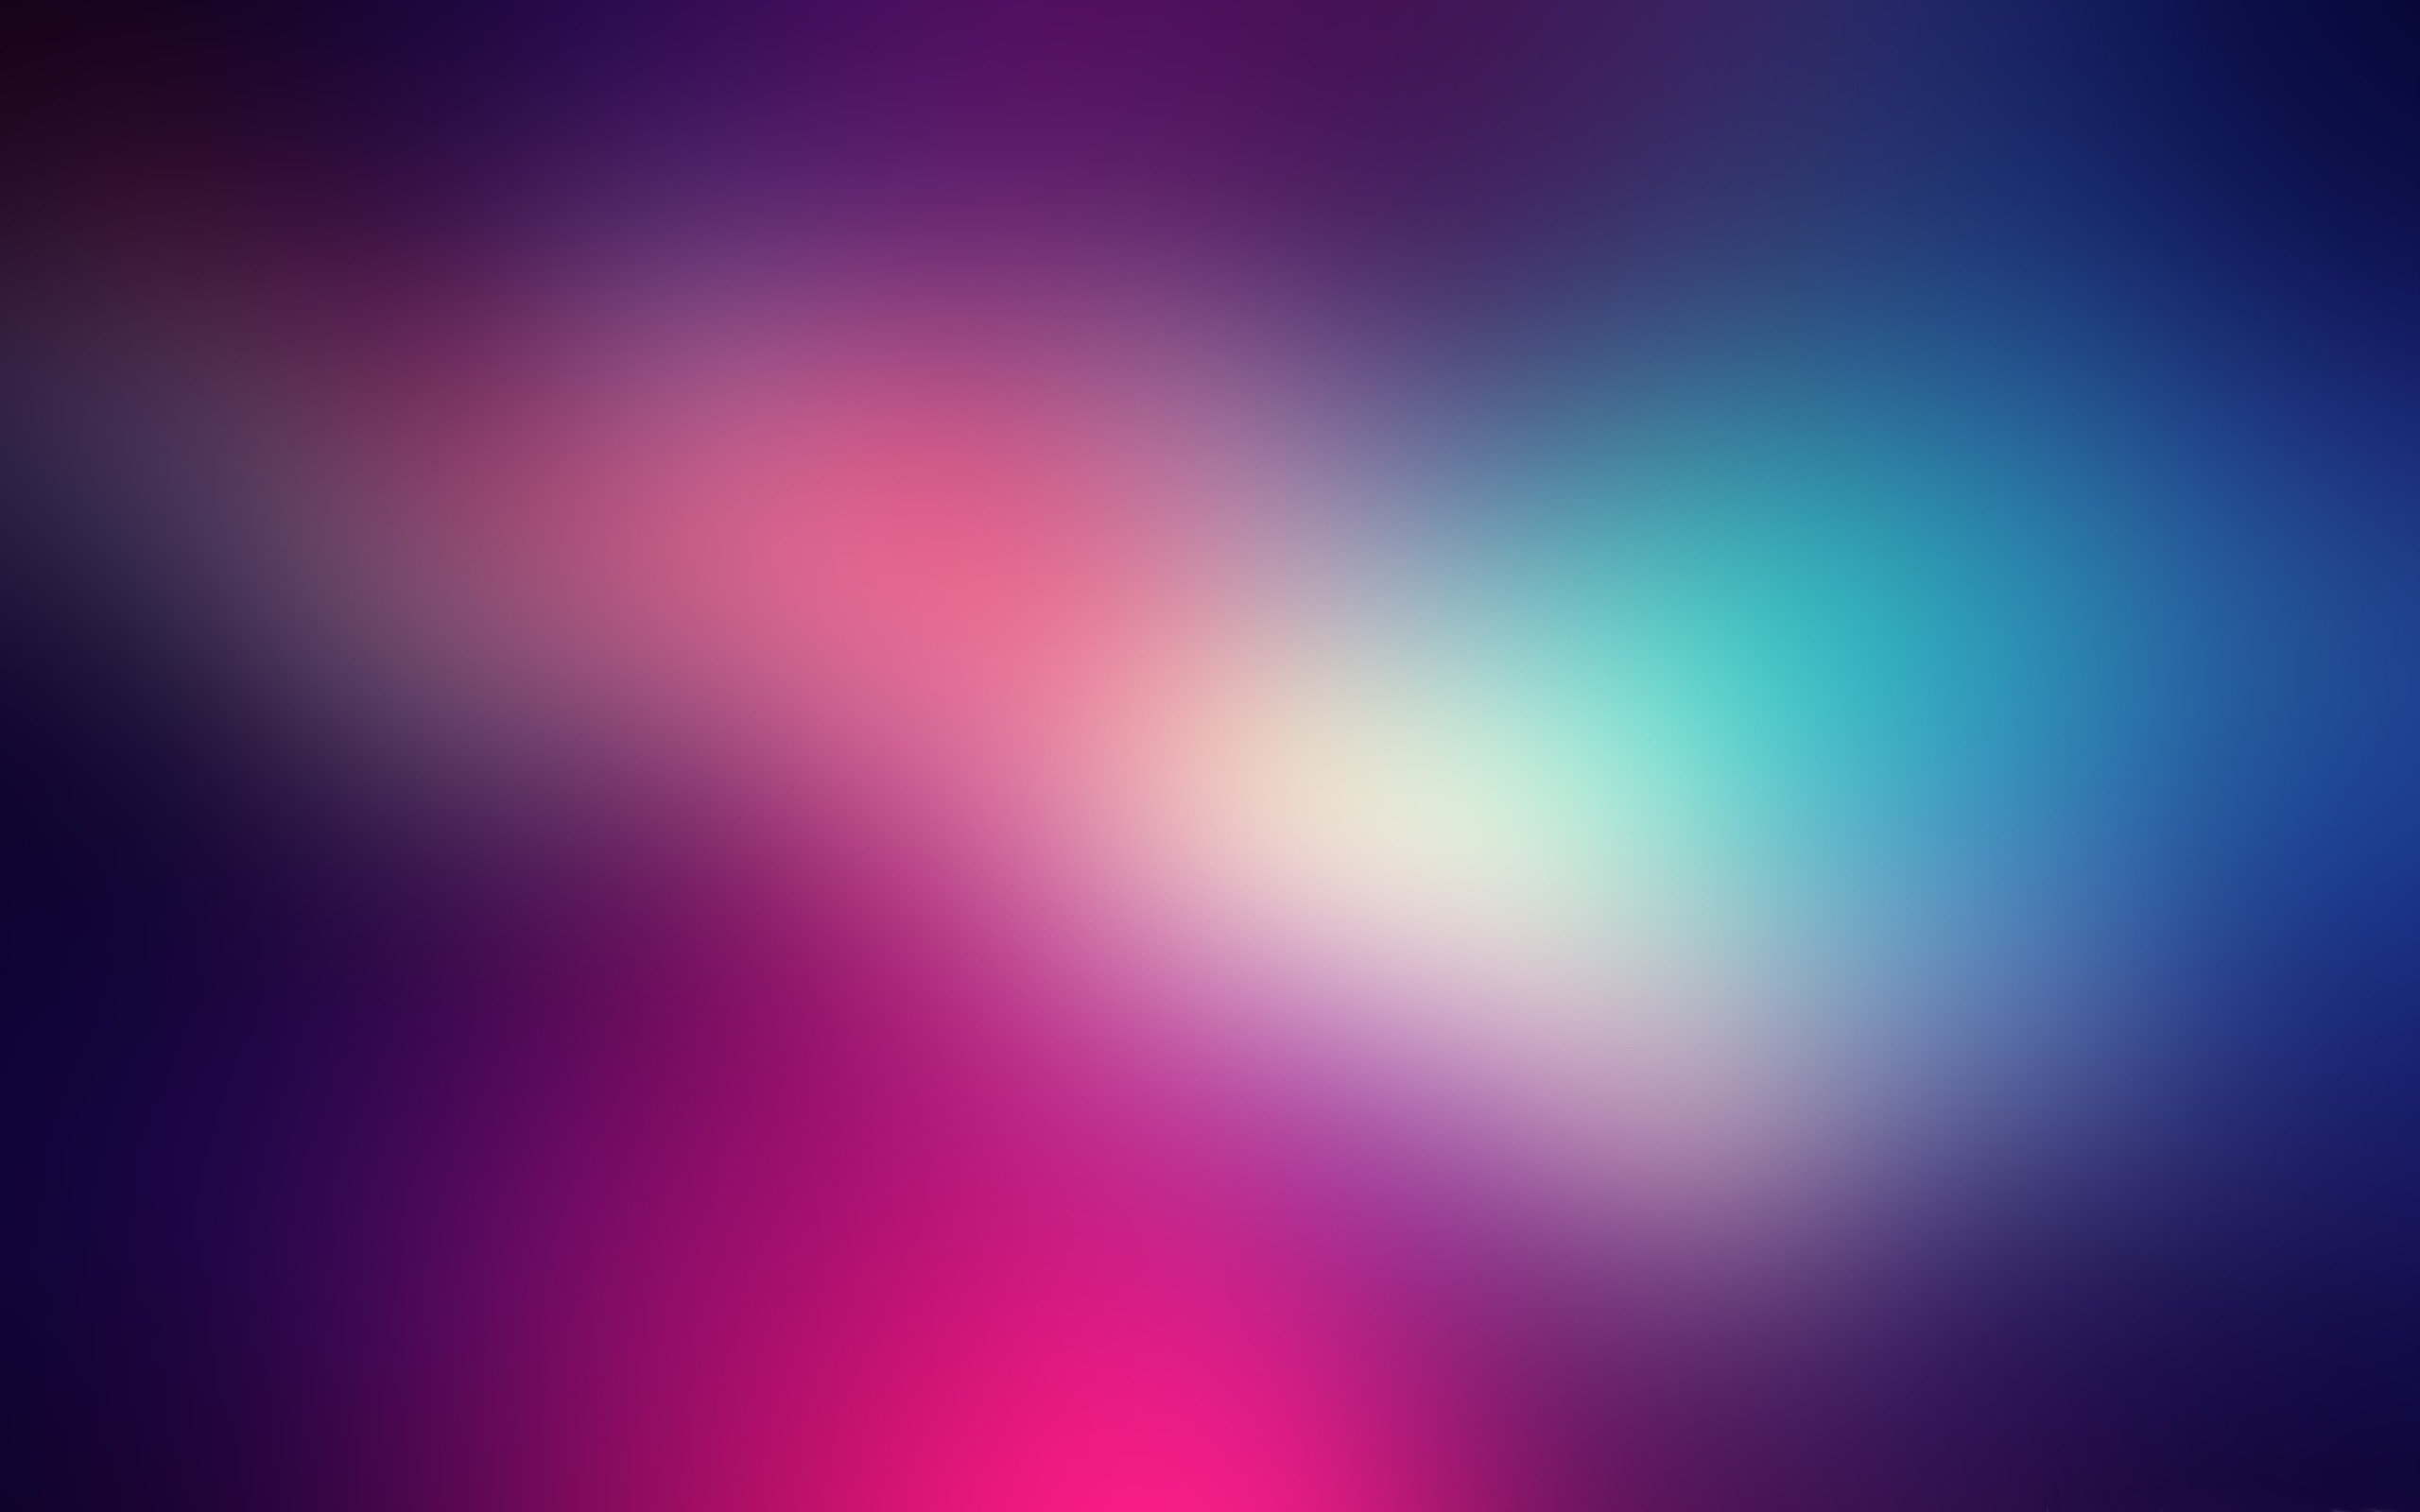 Purple IOS7 Wallpaper